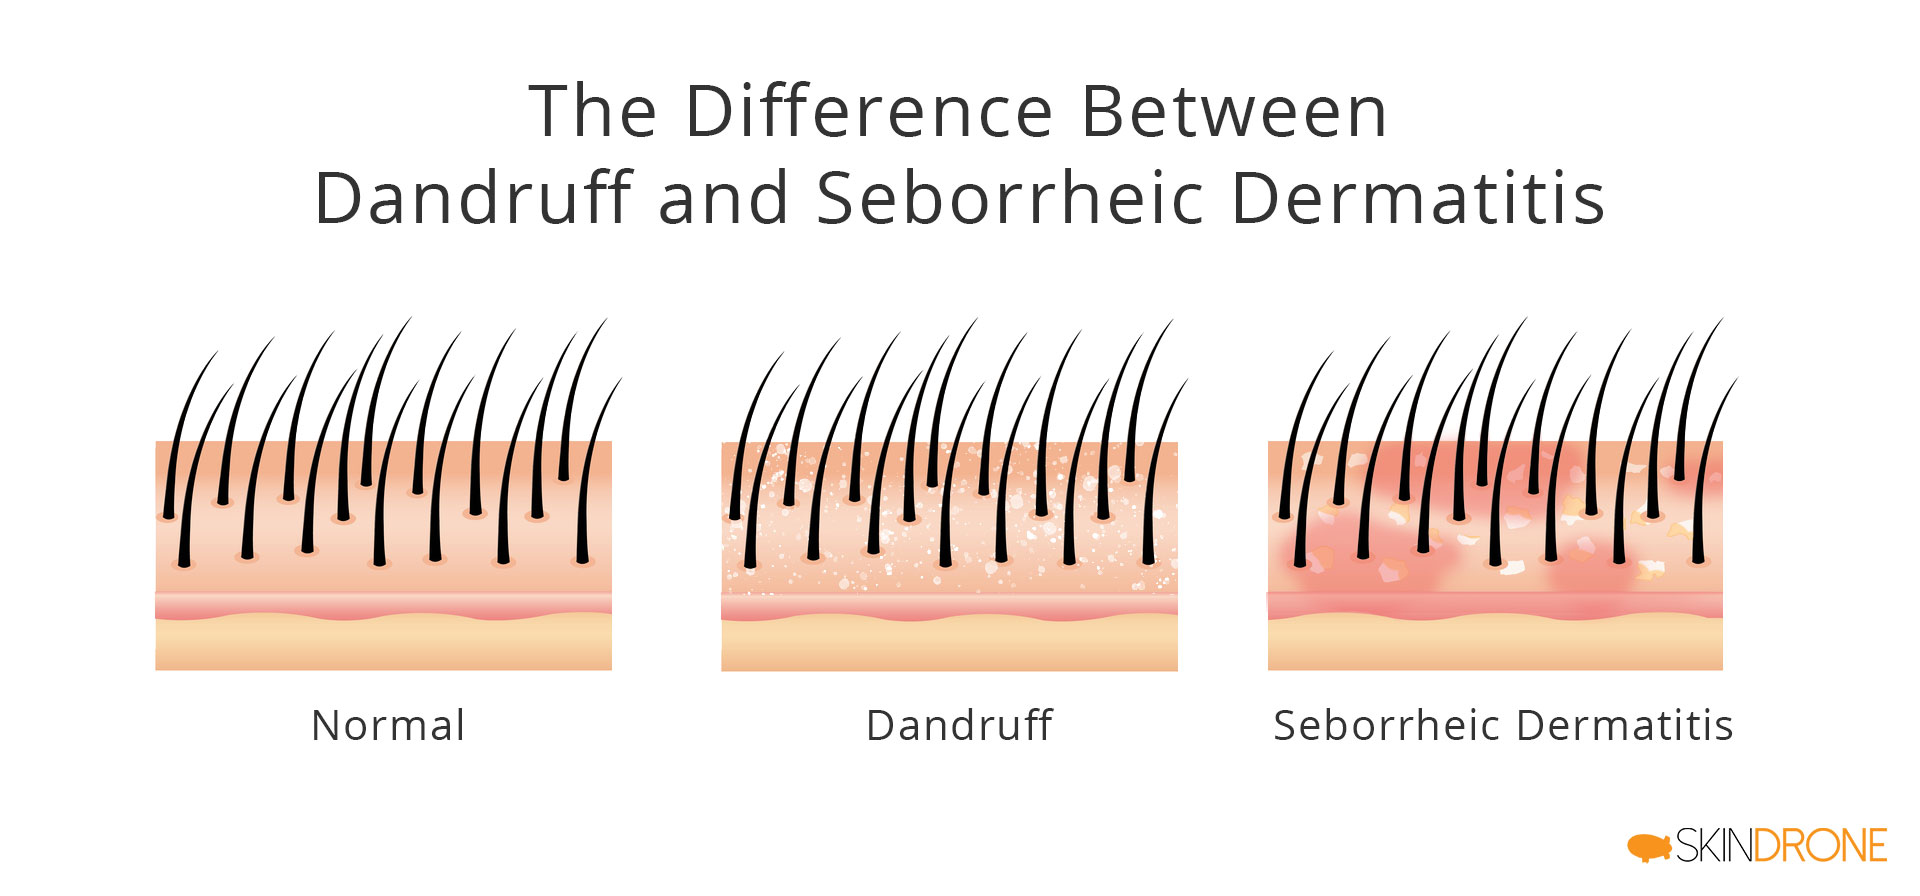 Visual representation of key differences between dandruff and seborrheic dermatitis